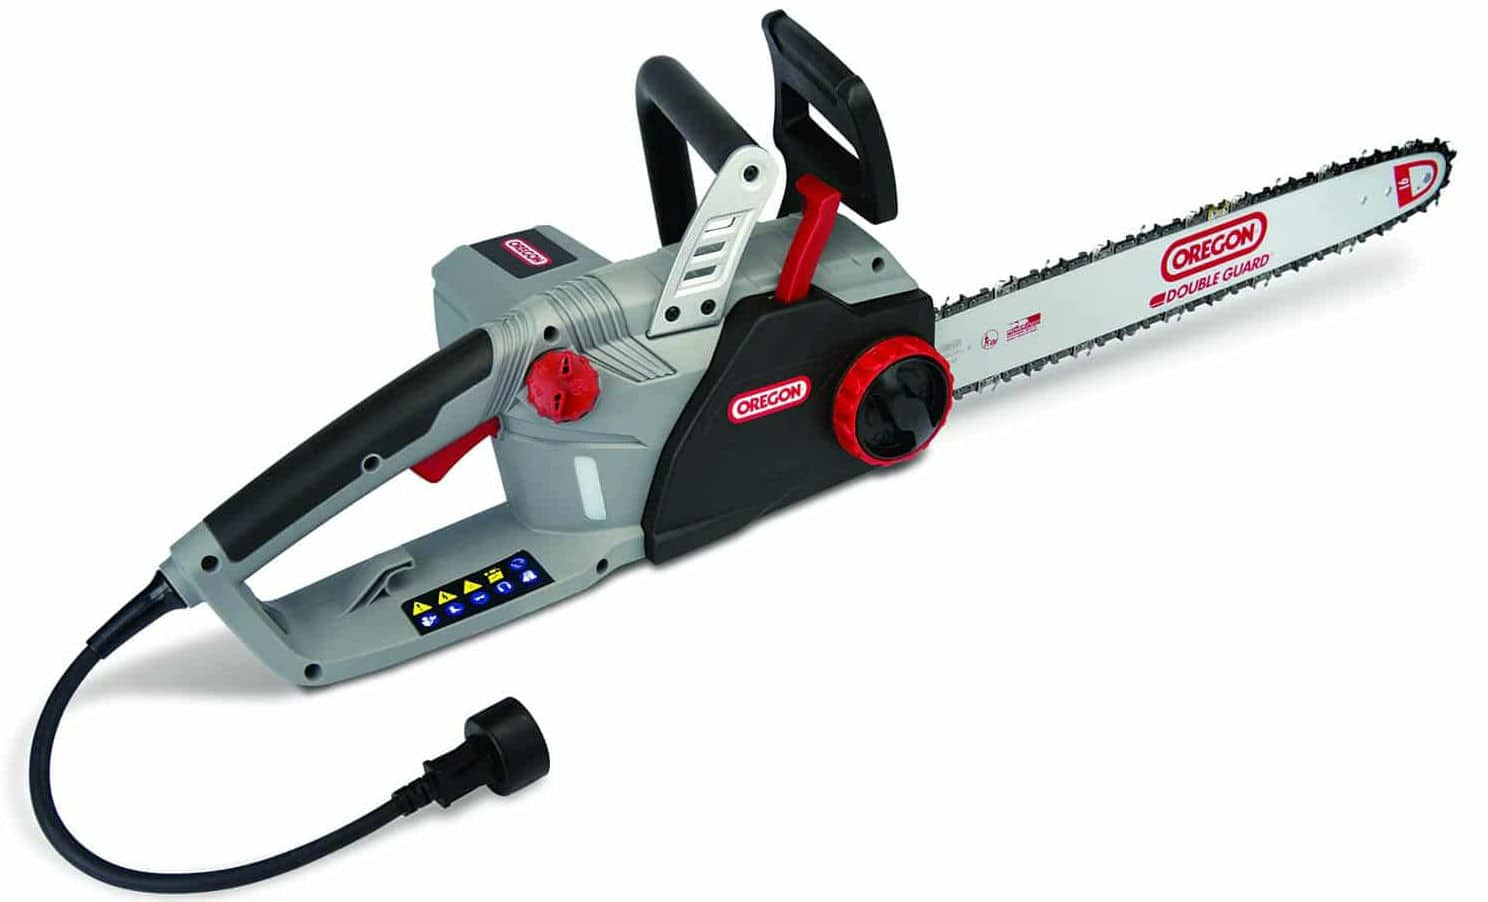 Best electric chainsaw in 2017 complete buyers guide and reviews oregon cs1500 self sharpening electric chainsaw greentooth Choice Image